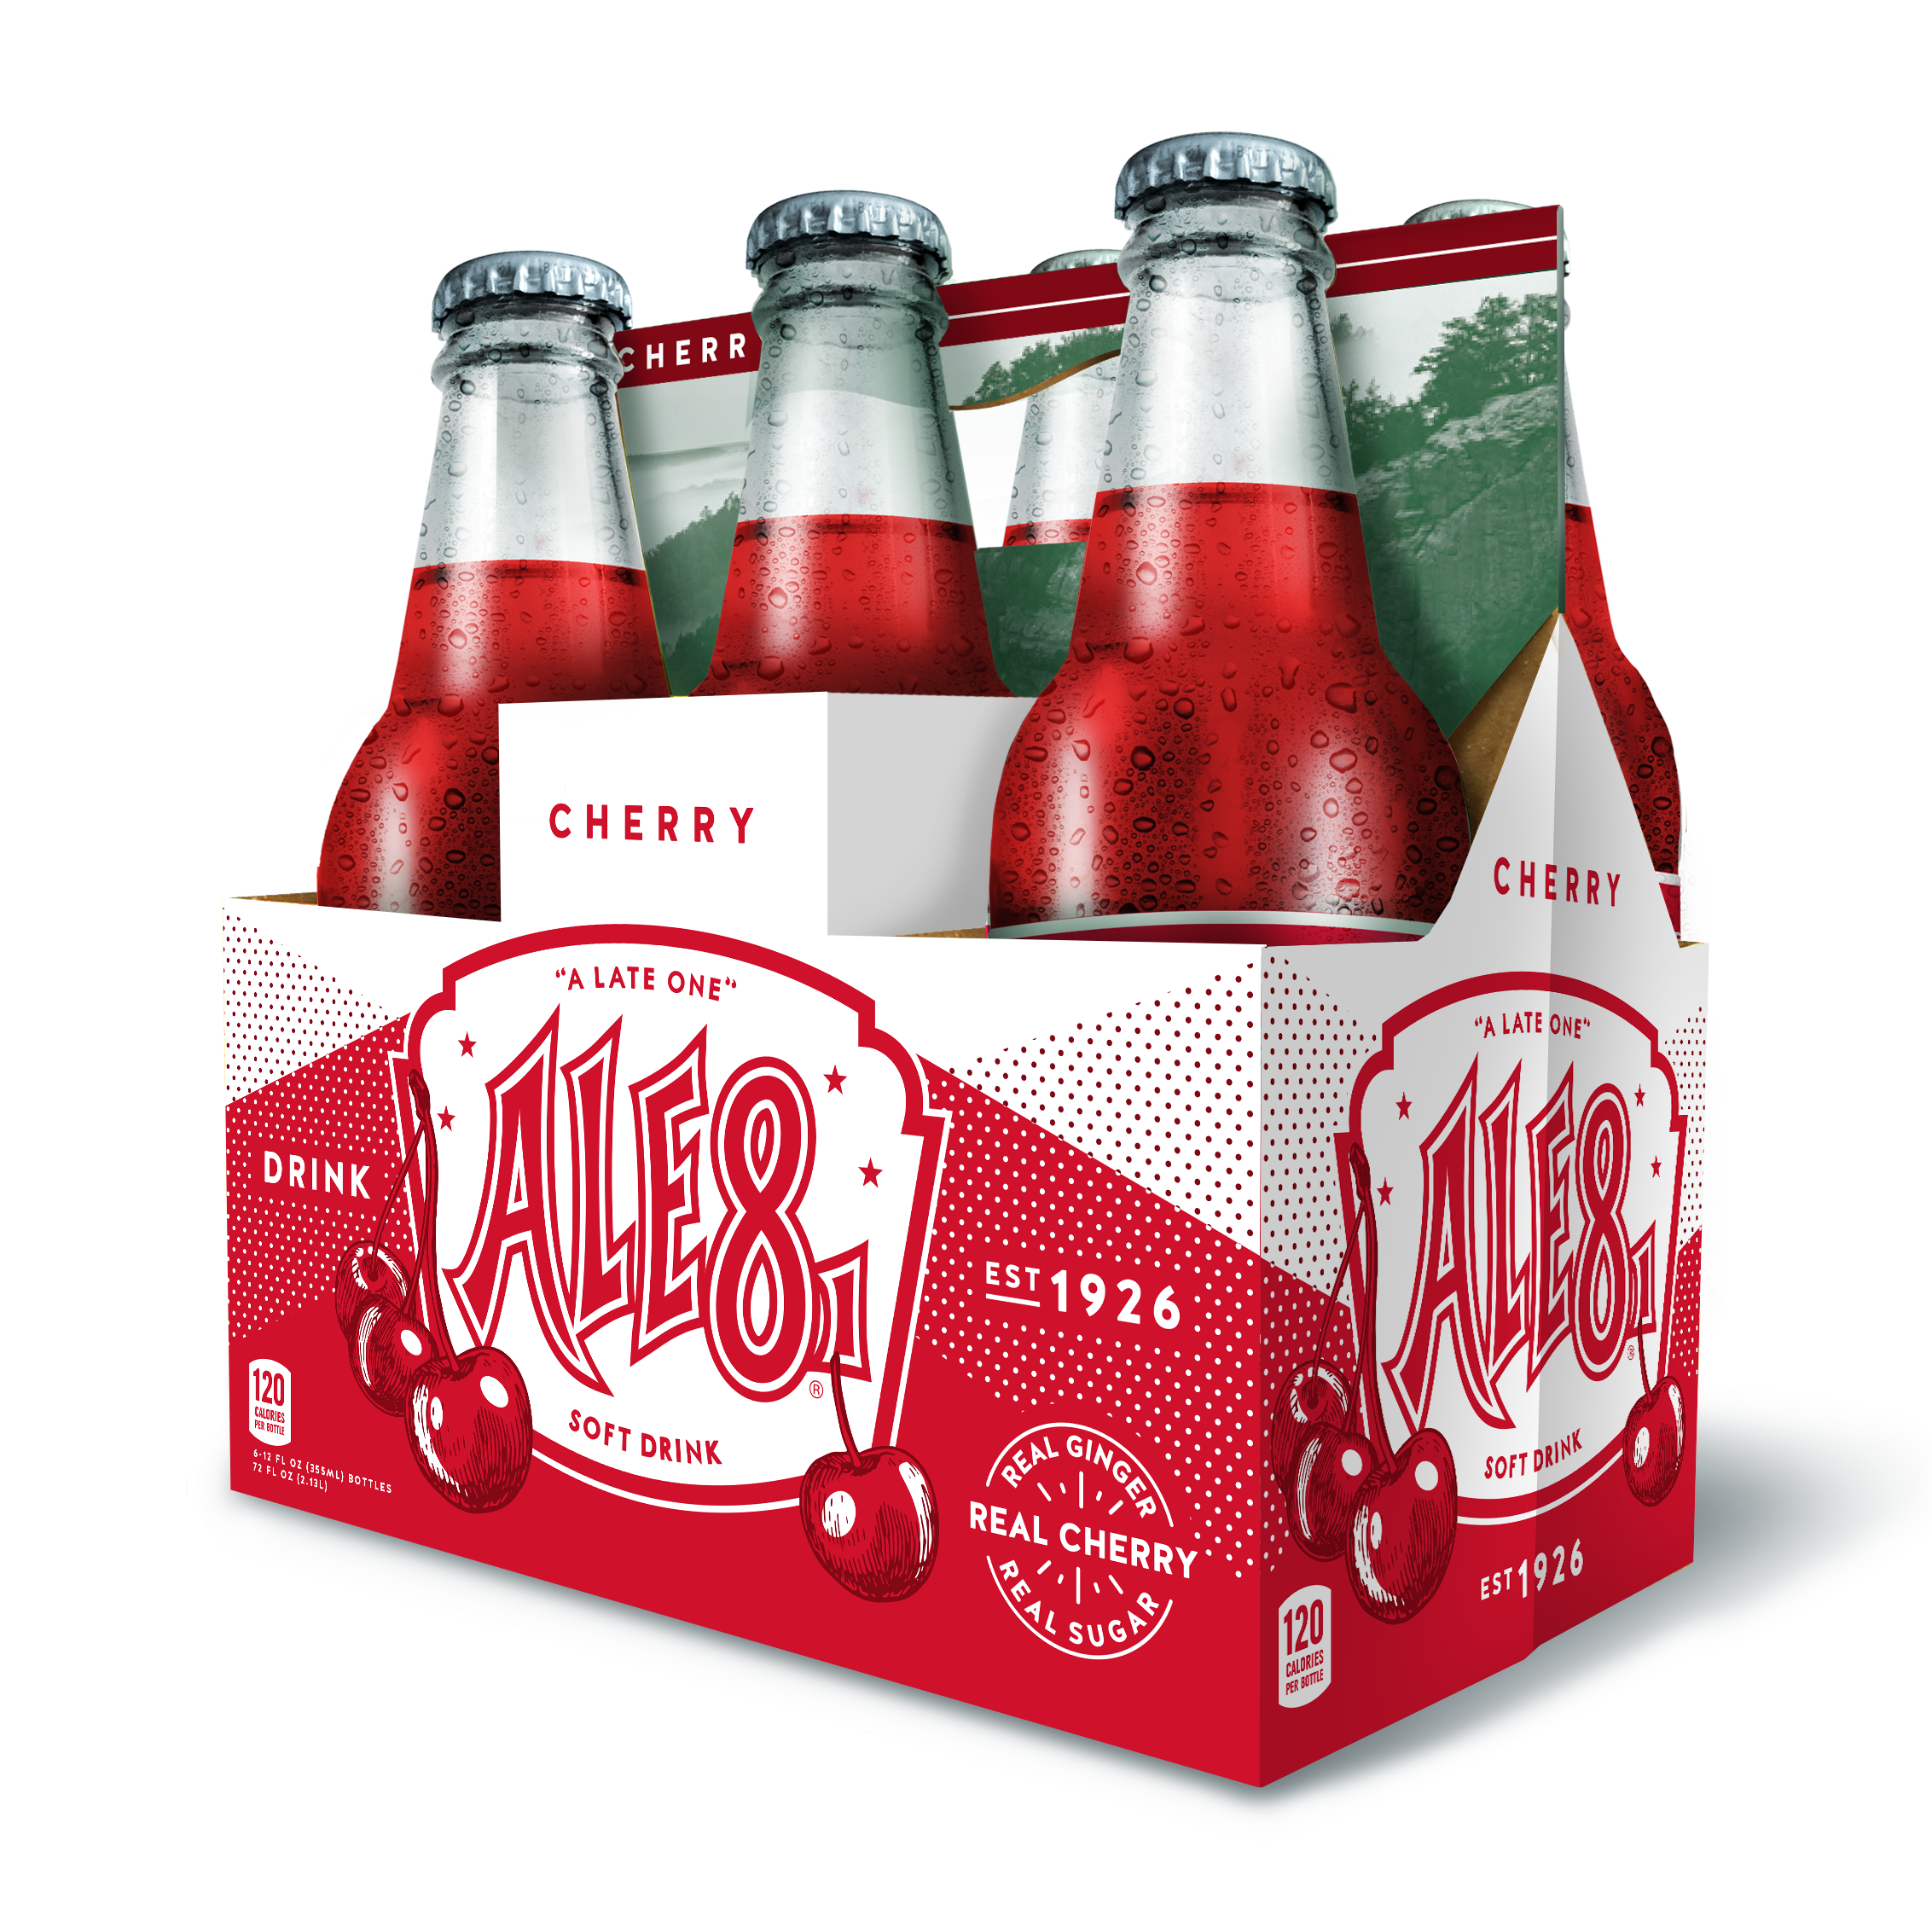 Ohio Krogers now carry the newest Cherry Ale-8-One soda